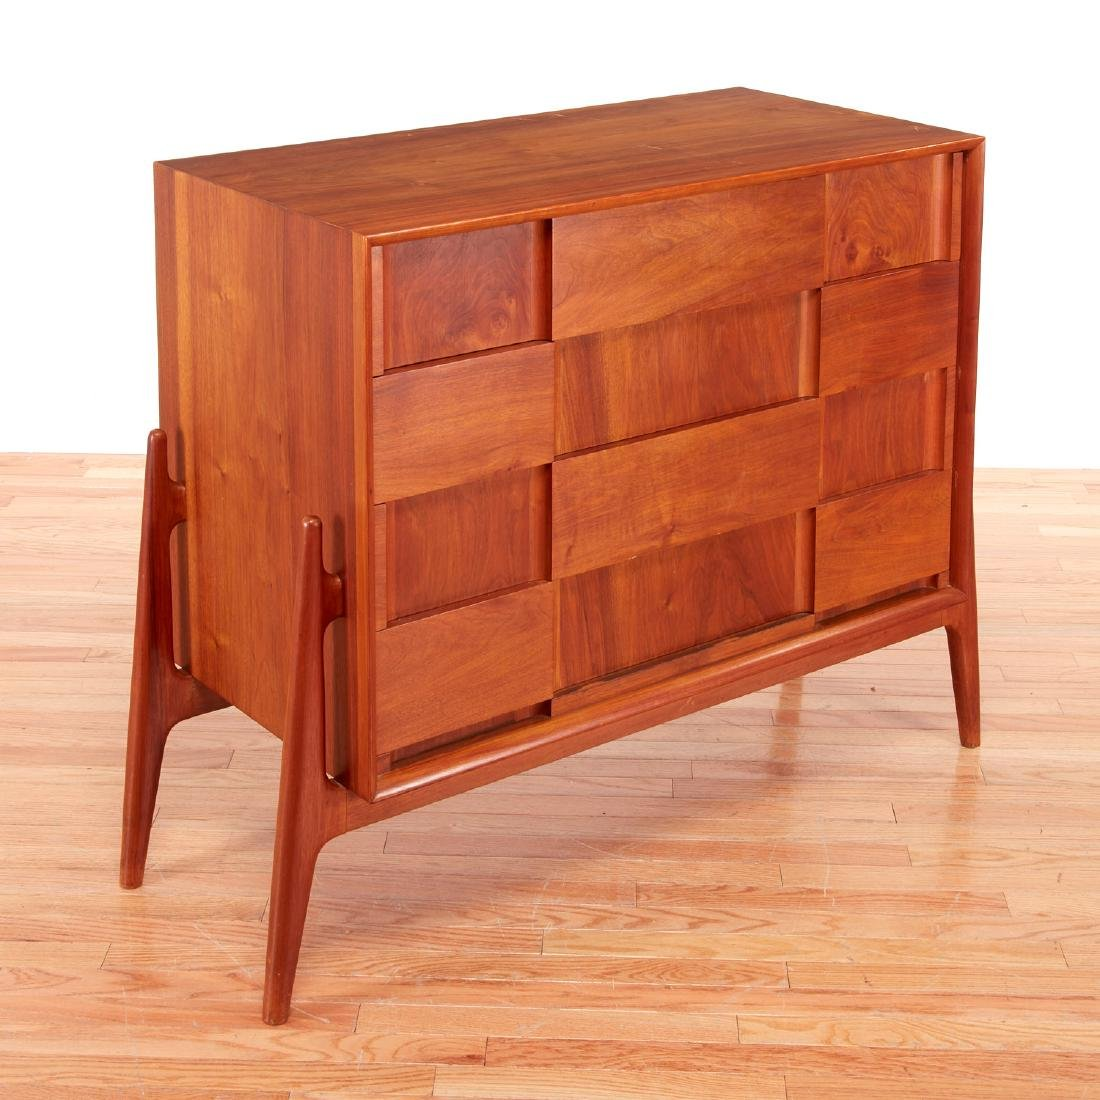 Edmond J. Spence chest of drawers